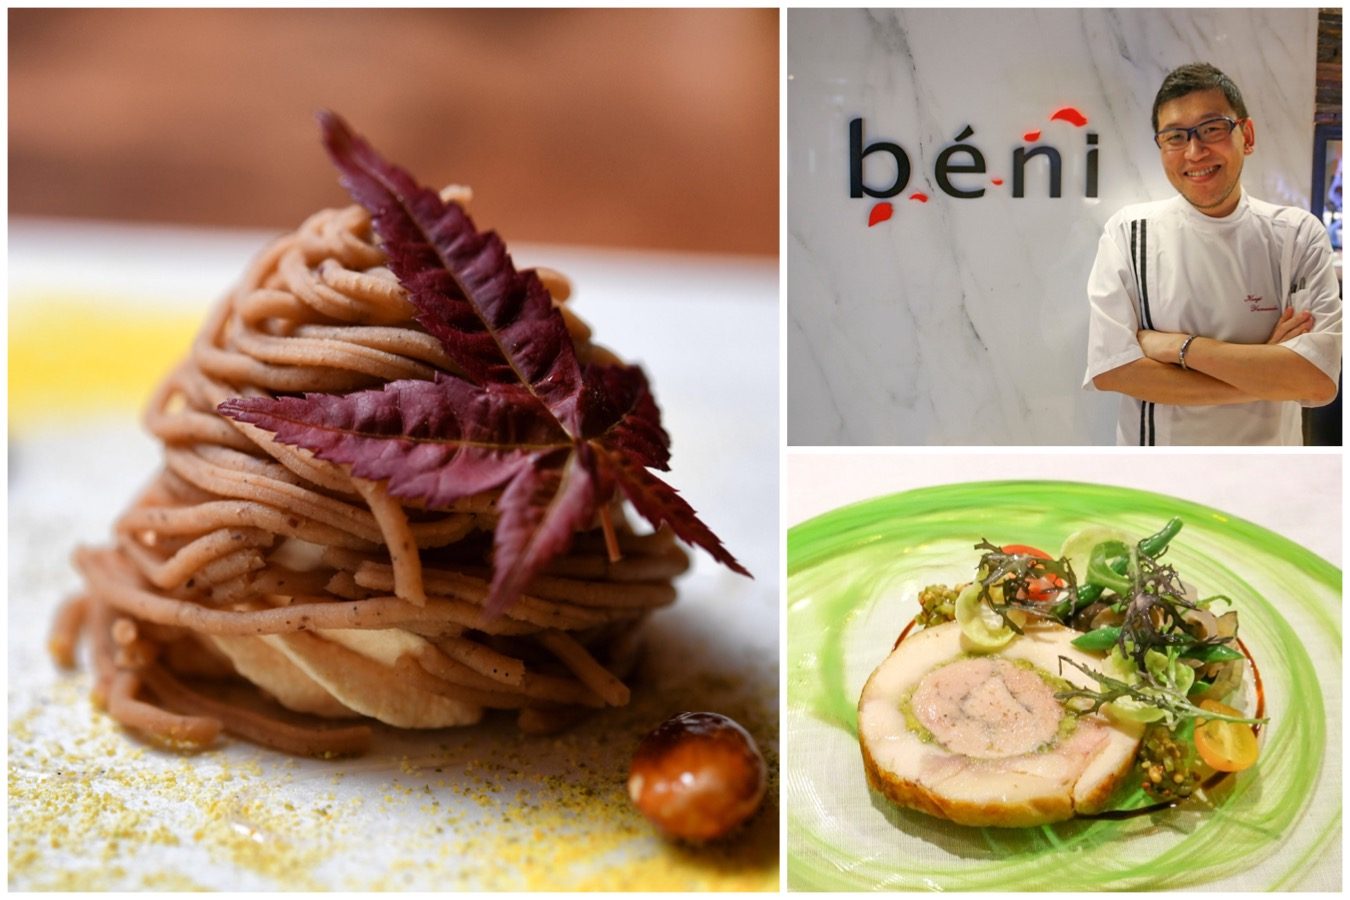 Beni - Japanese-French Cuisine With Chef's Table Experience. 1 Michelin Star